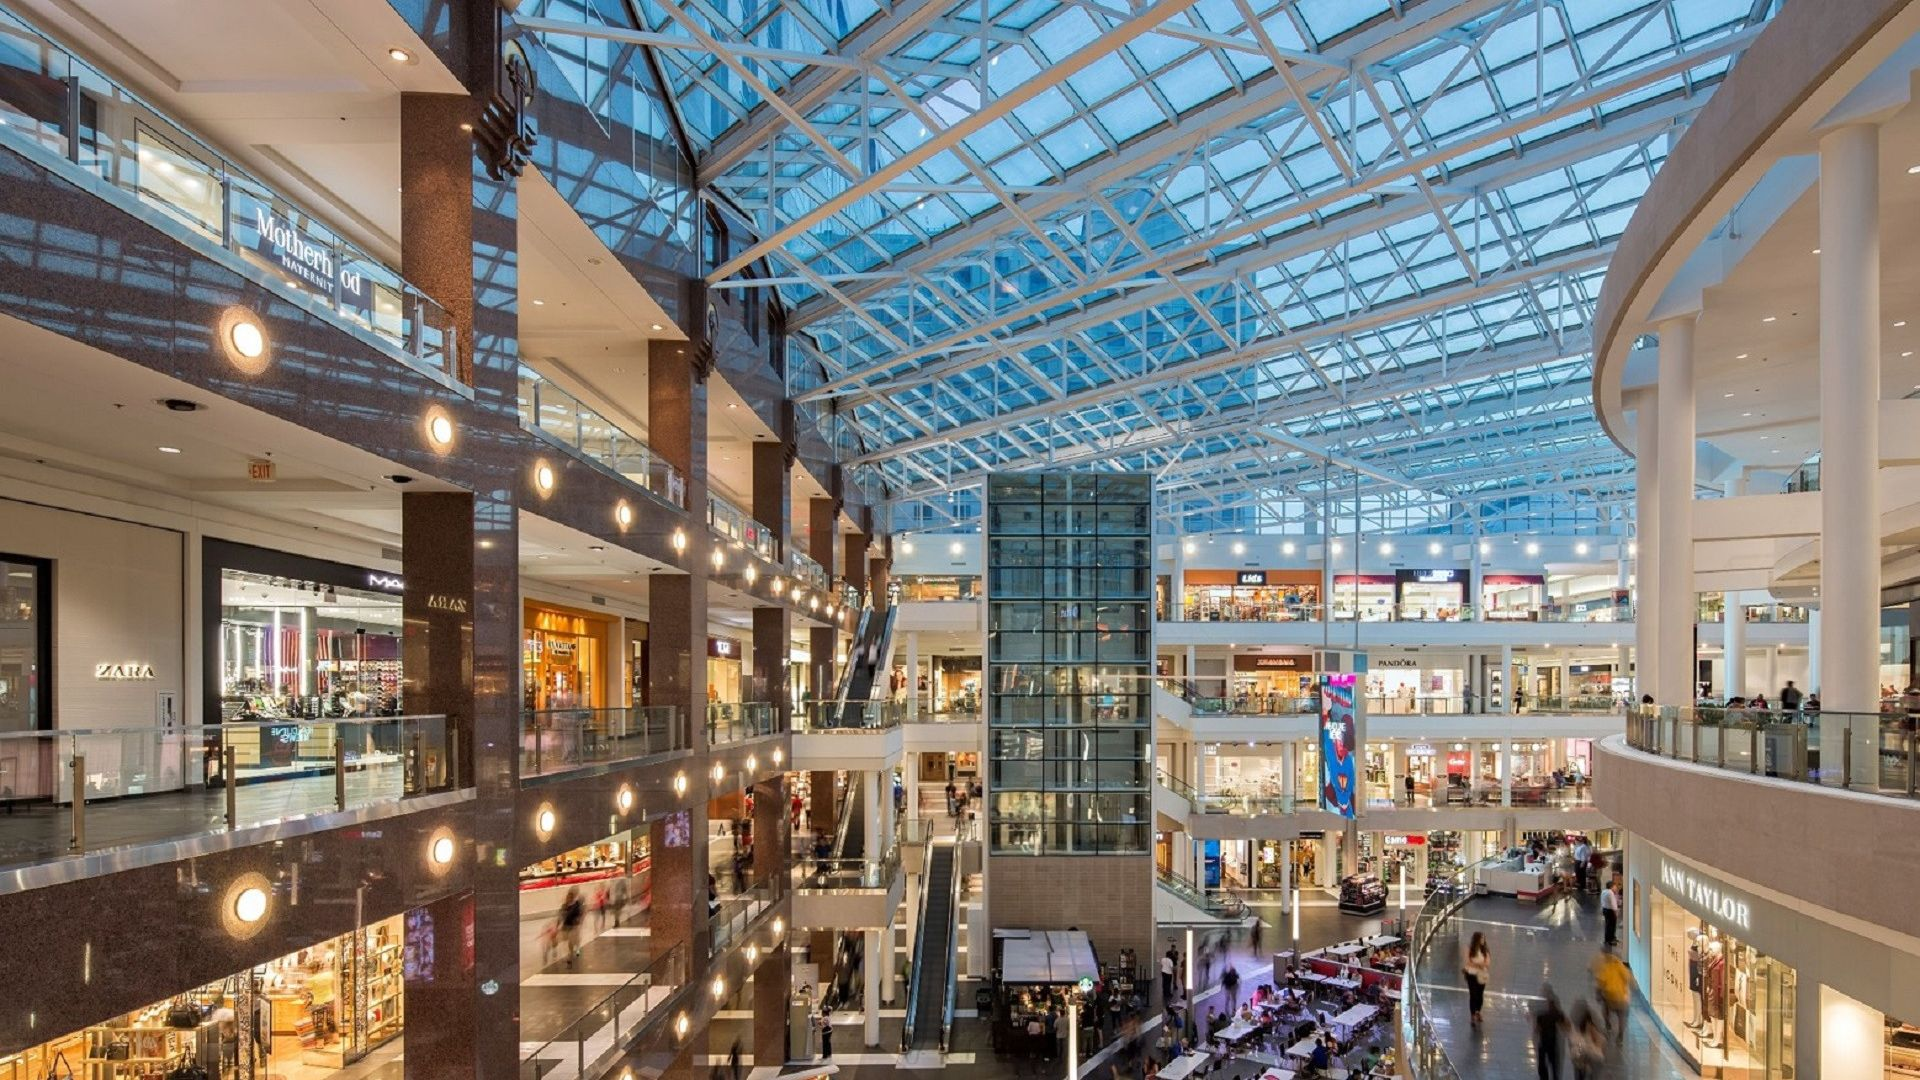 The fashion centre at pentagon city 83